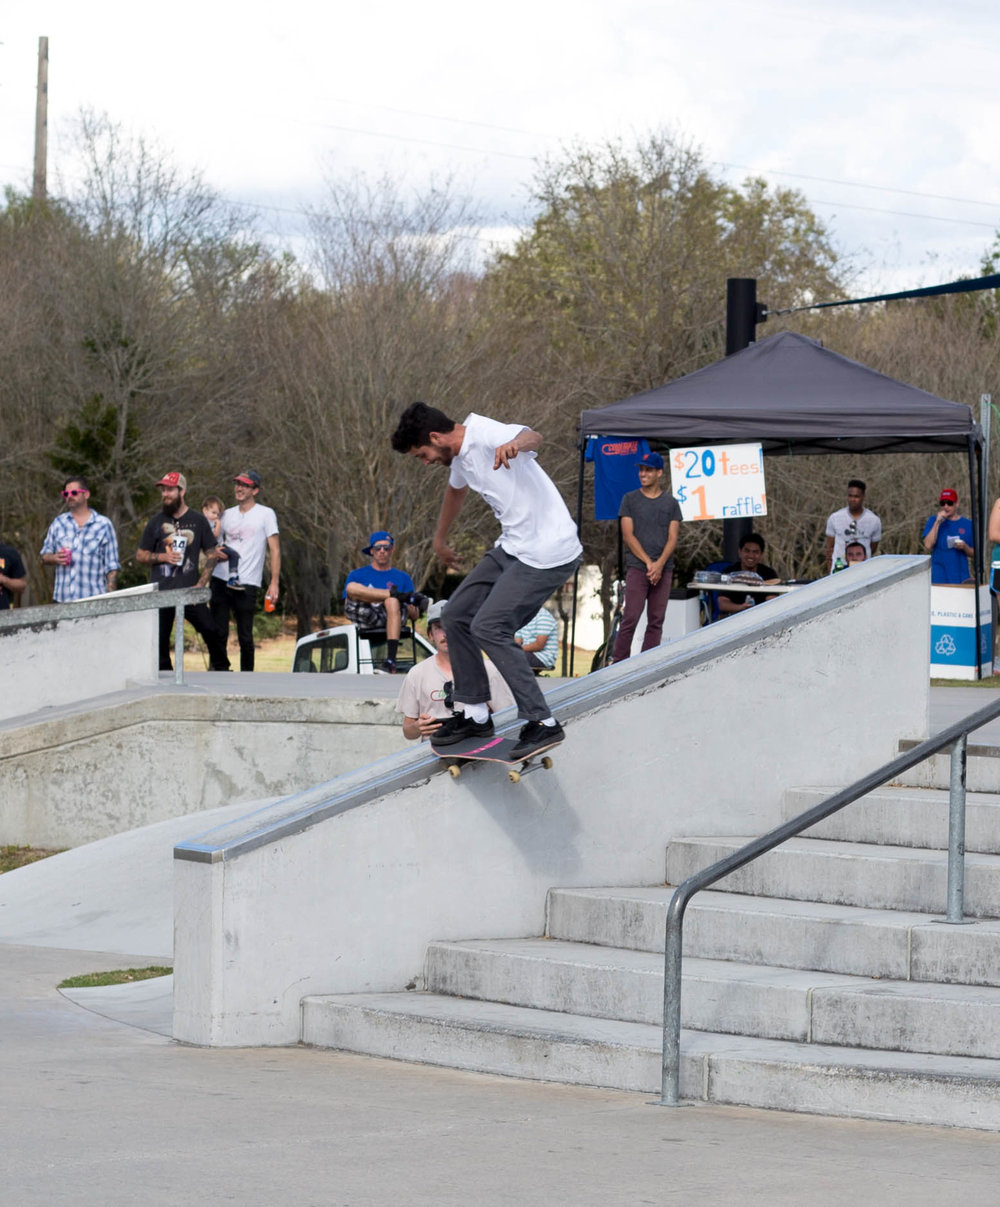 Landy nailed this frontside tailslide to fakie!